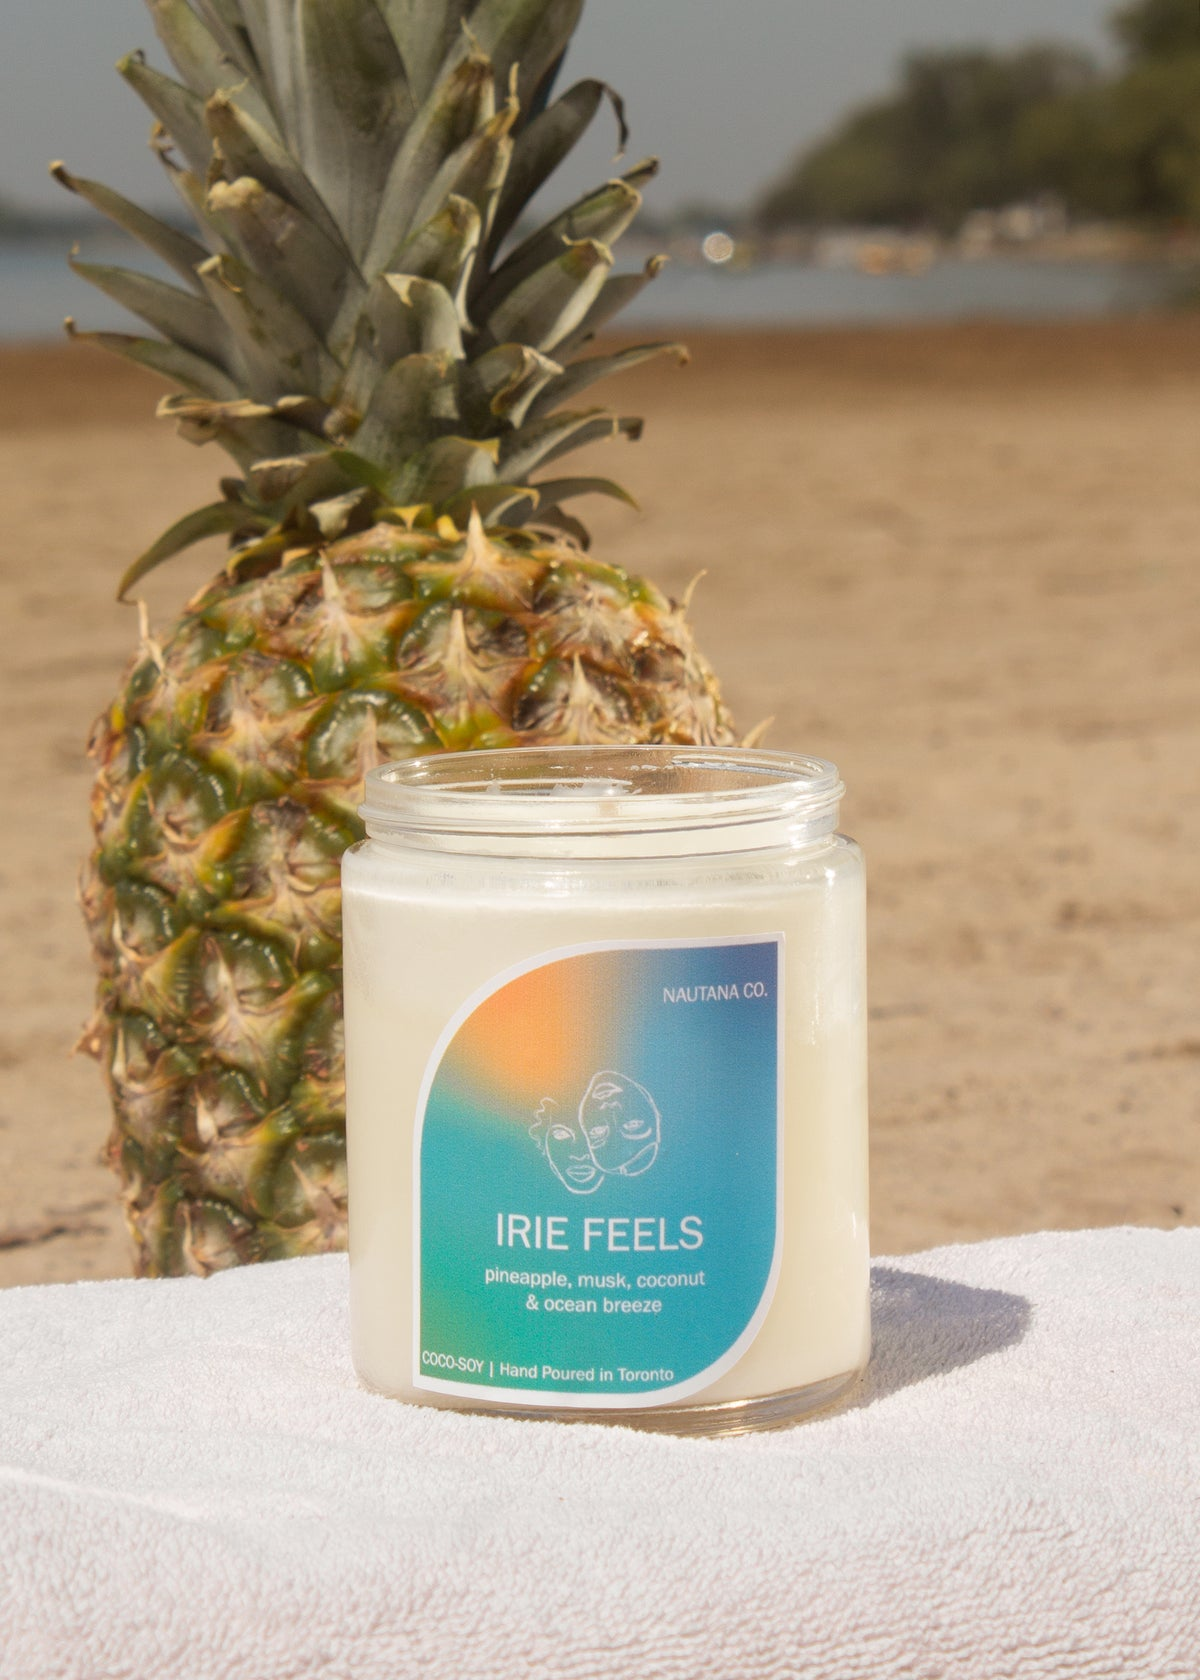 Image of Irie Feels - Pineapple, Coconut & Musk Candle